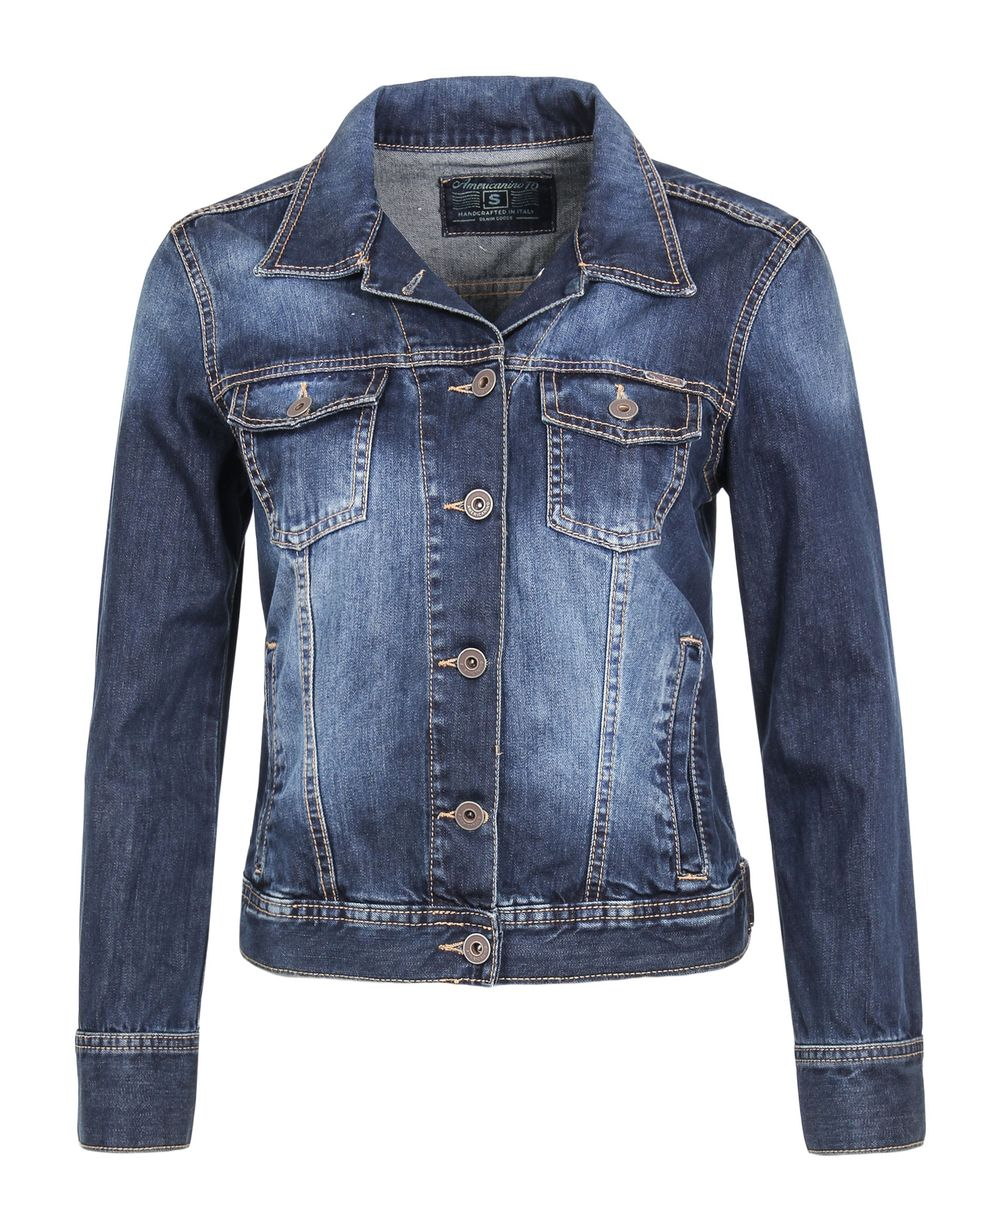 Find great deals on eBay for chaqueta. Shop with confidence.